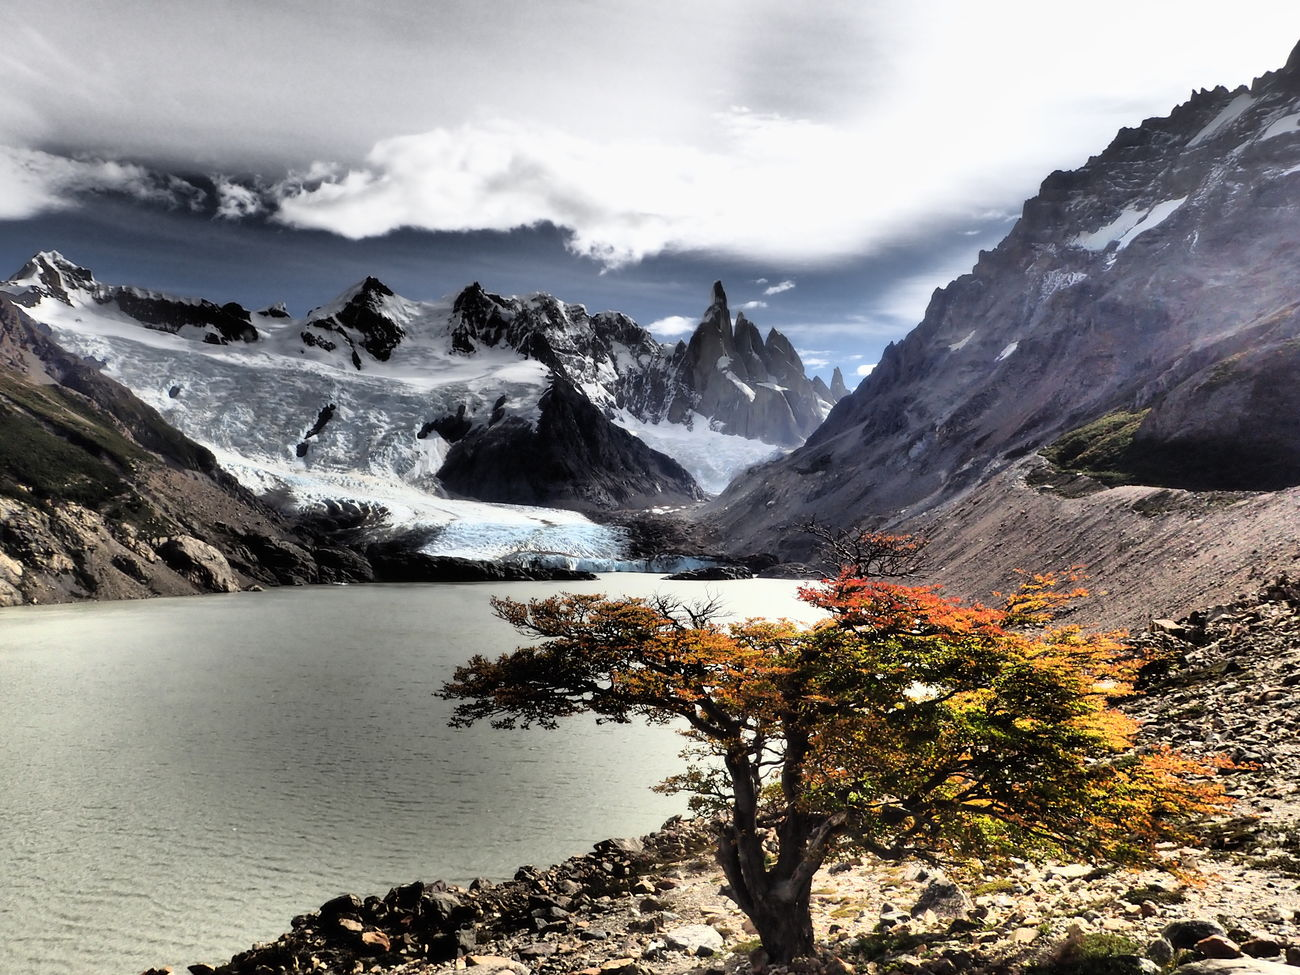 Laguna torre with Cerro Torre in the background